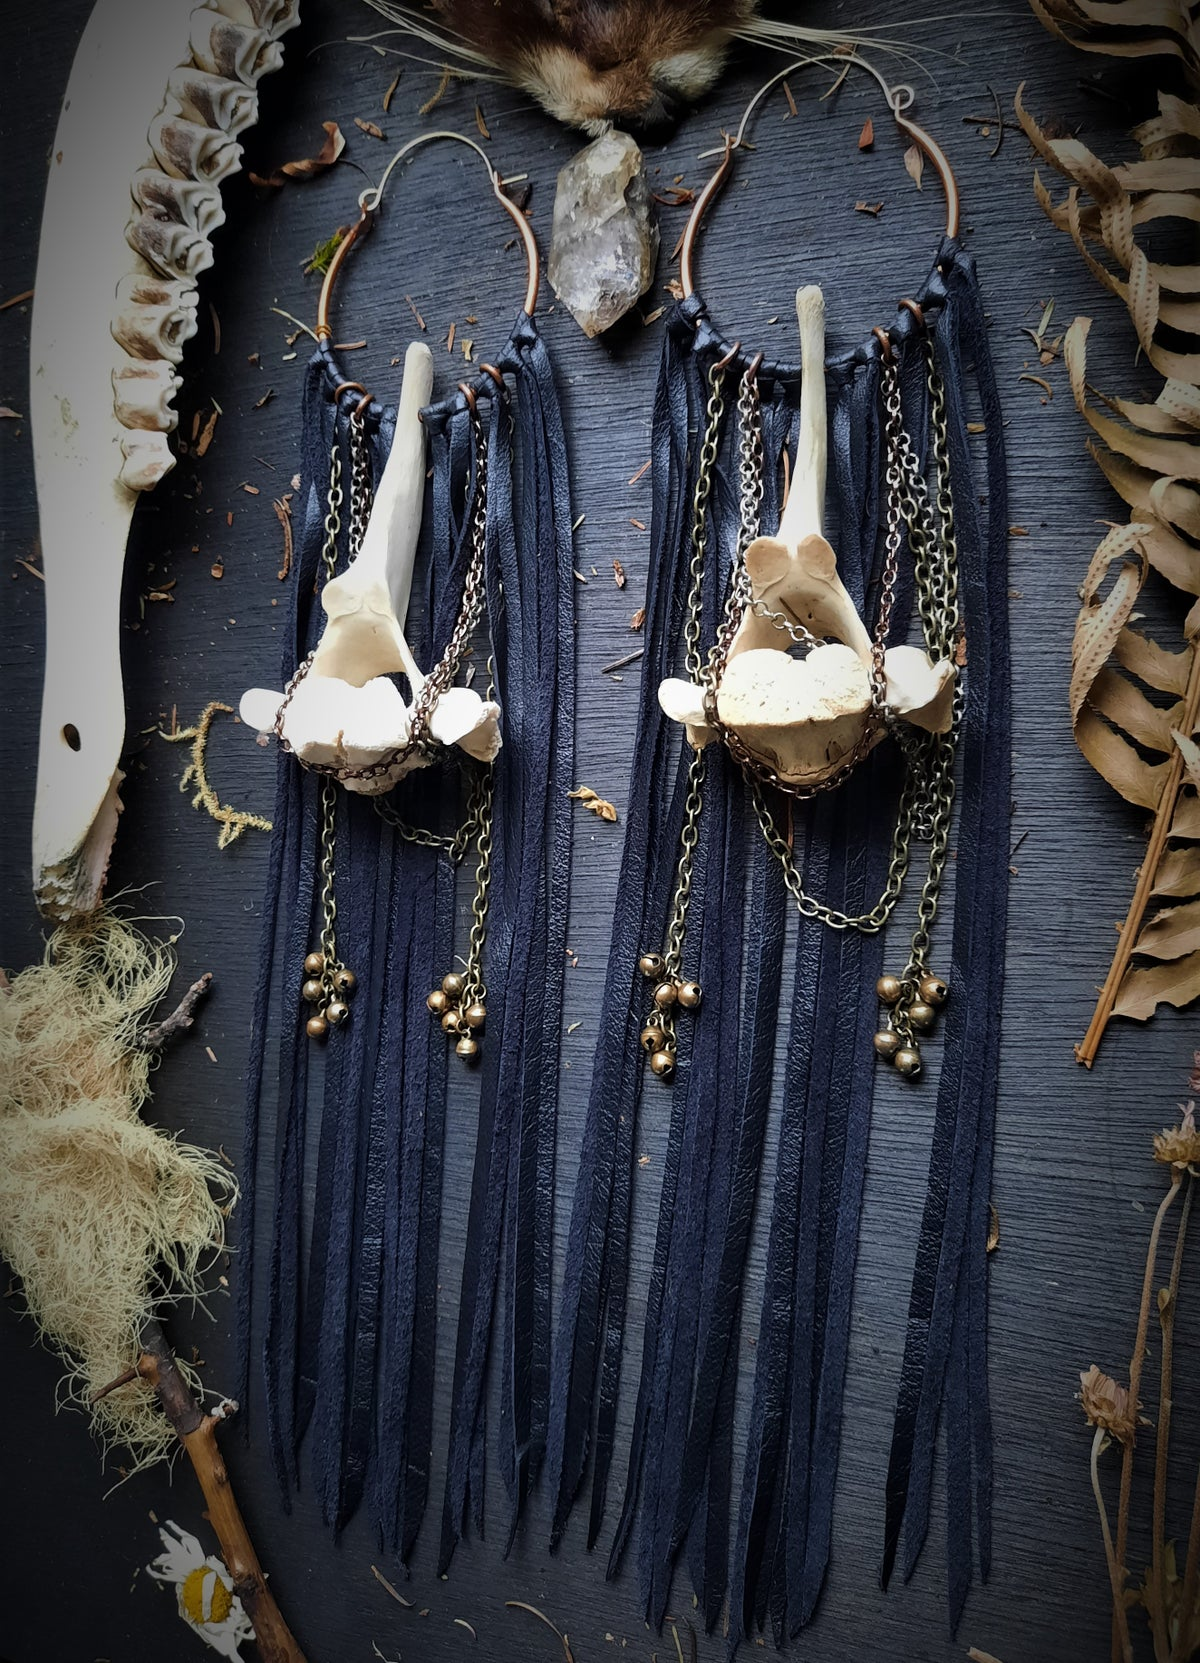 Image of Deer Vertebrae with Chains, Bells, and Leather Fringe Hoops